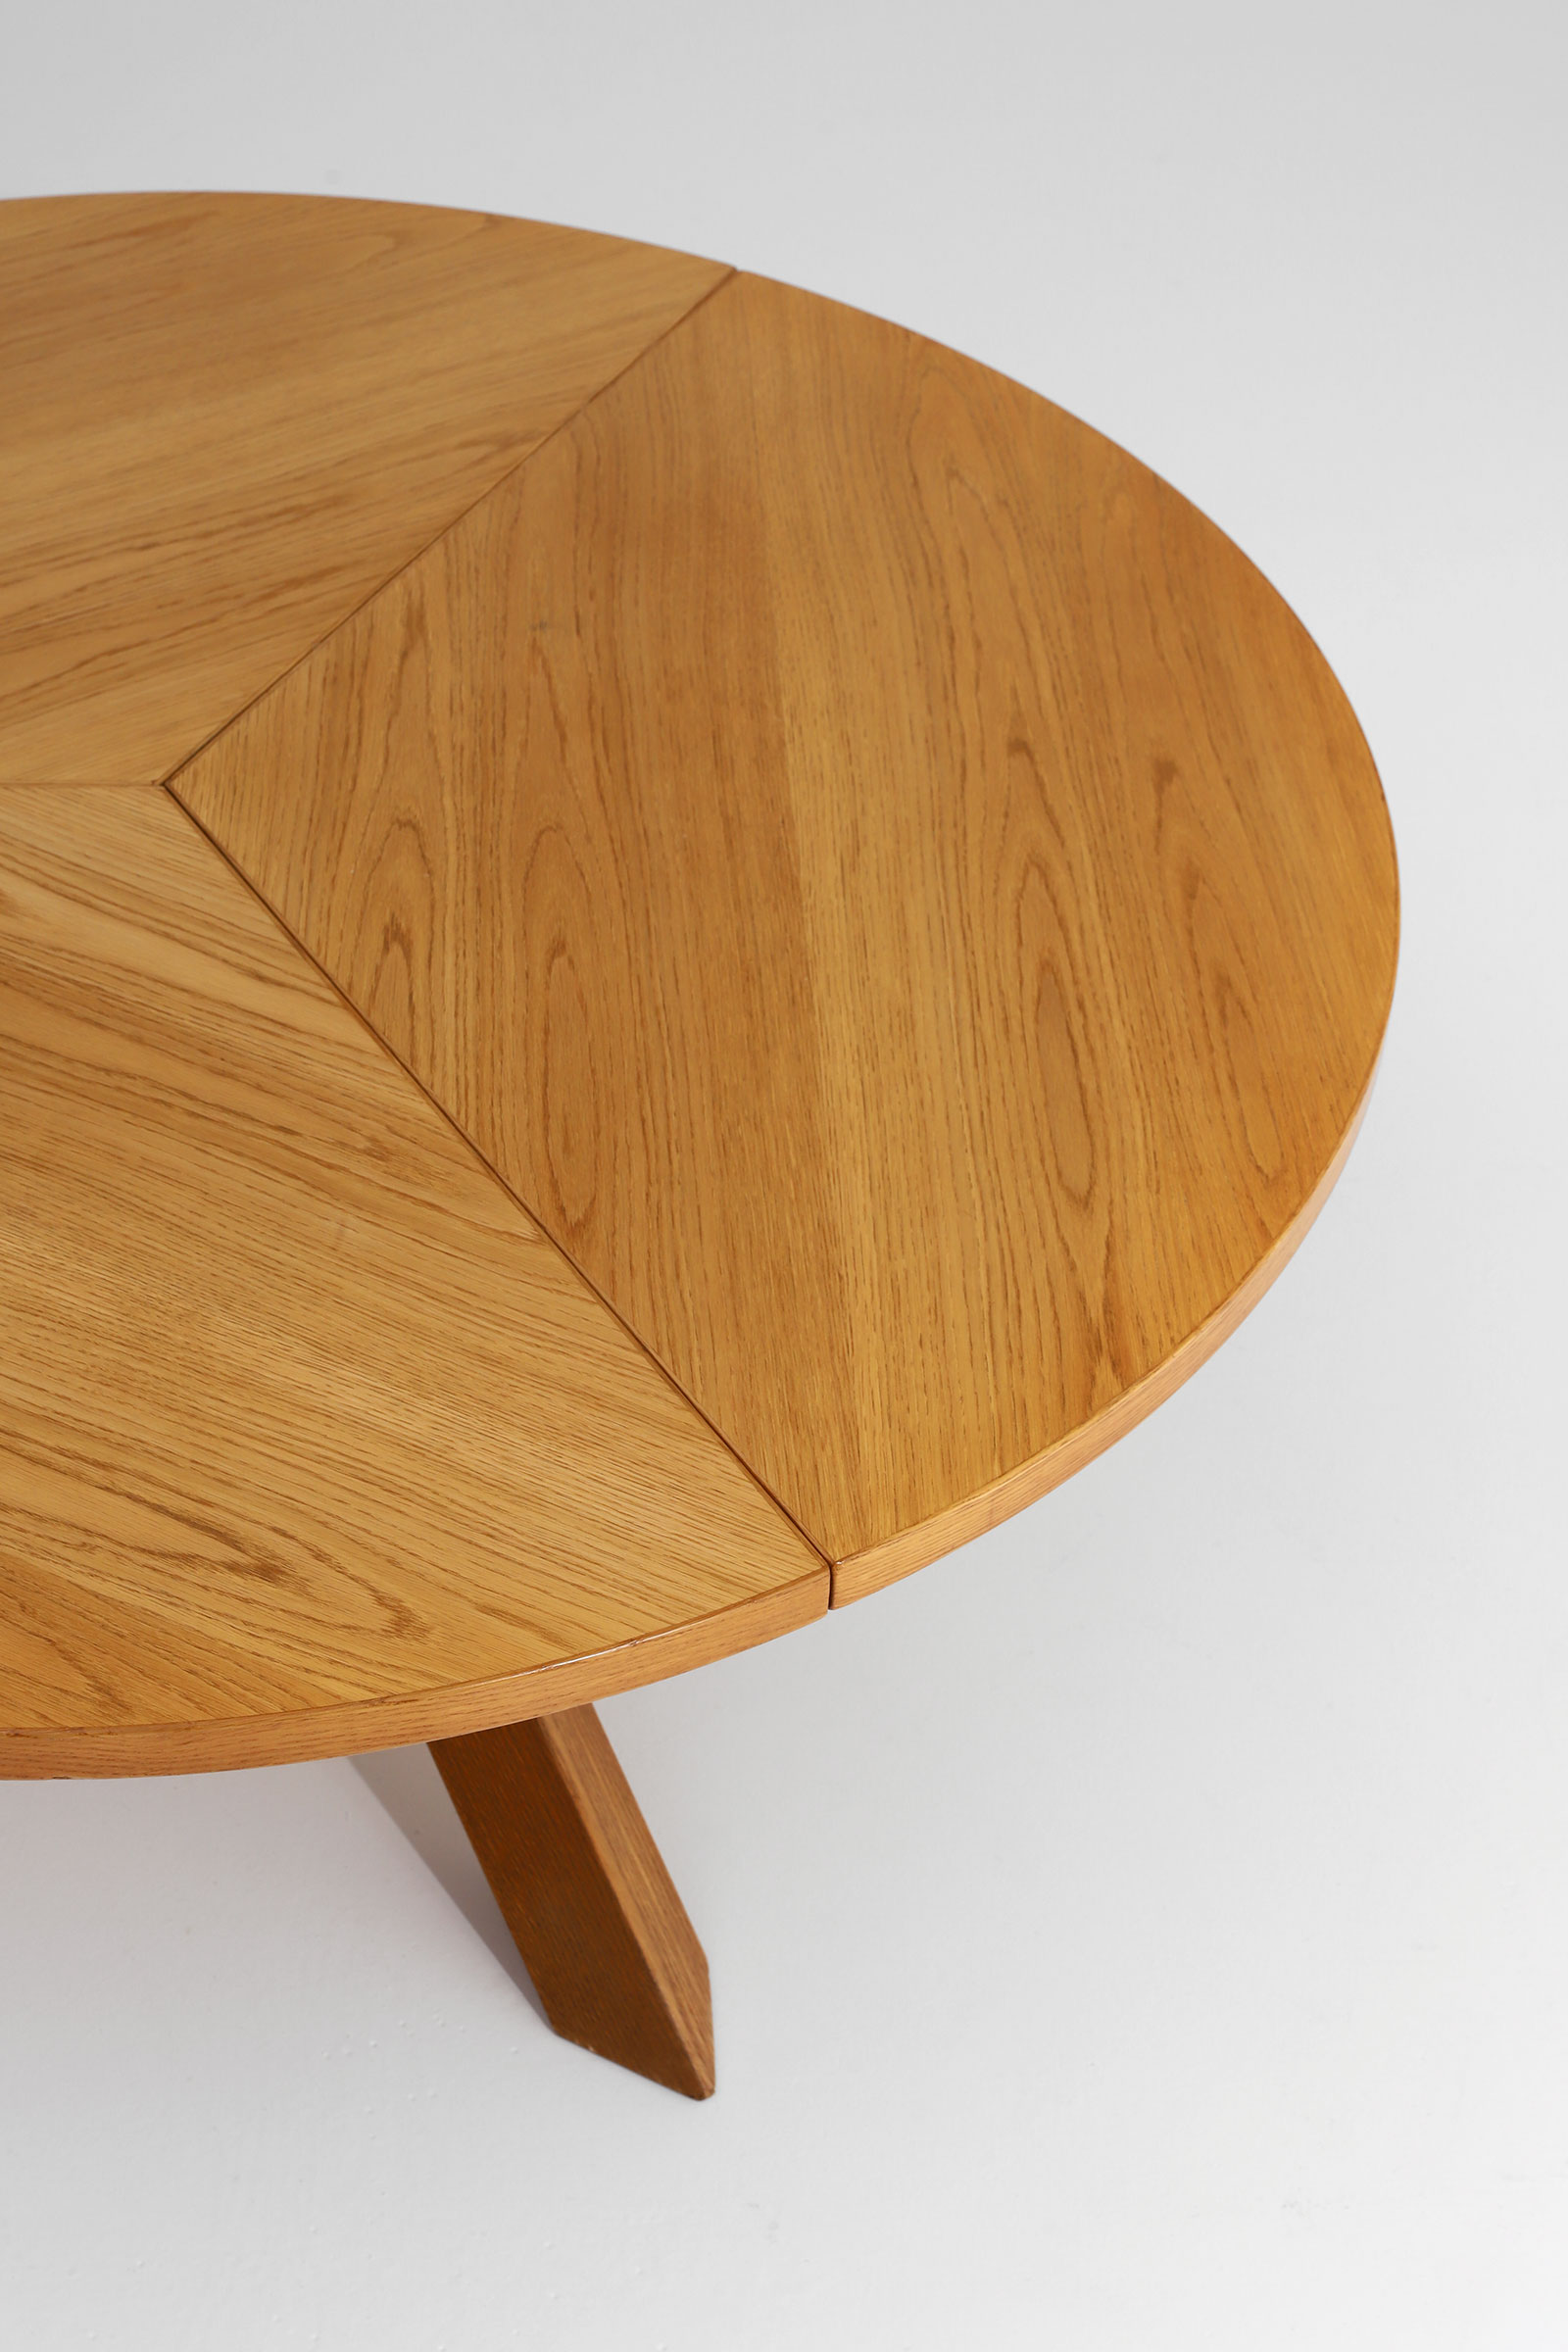 Gerard Geytenbeek Dining Table for AZS The Netherlandsimage 6